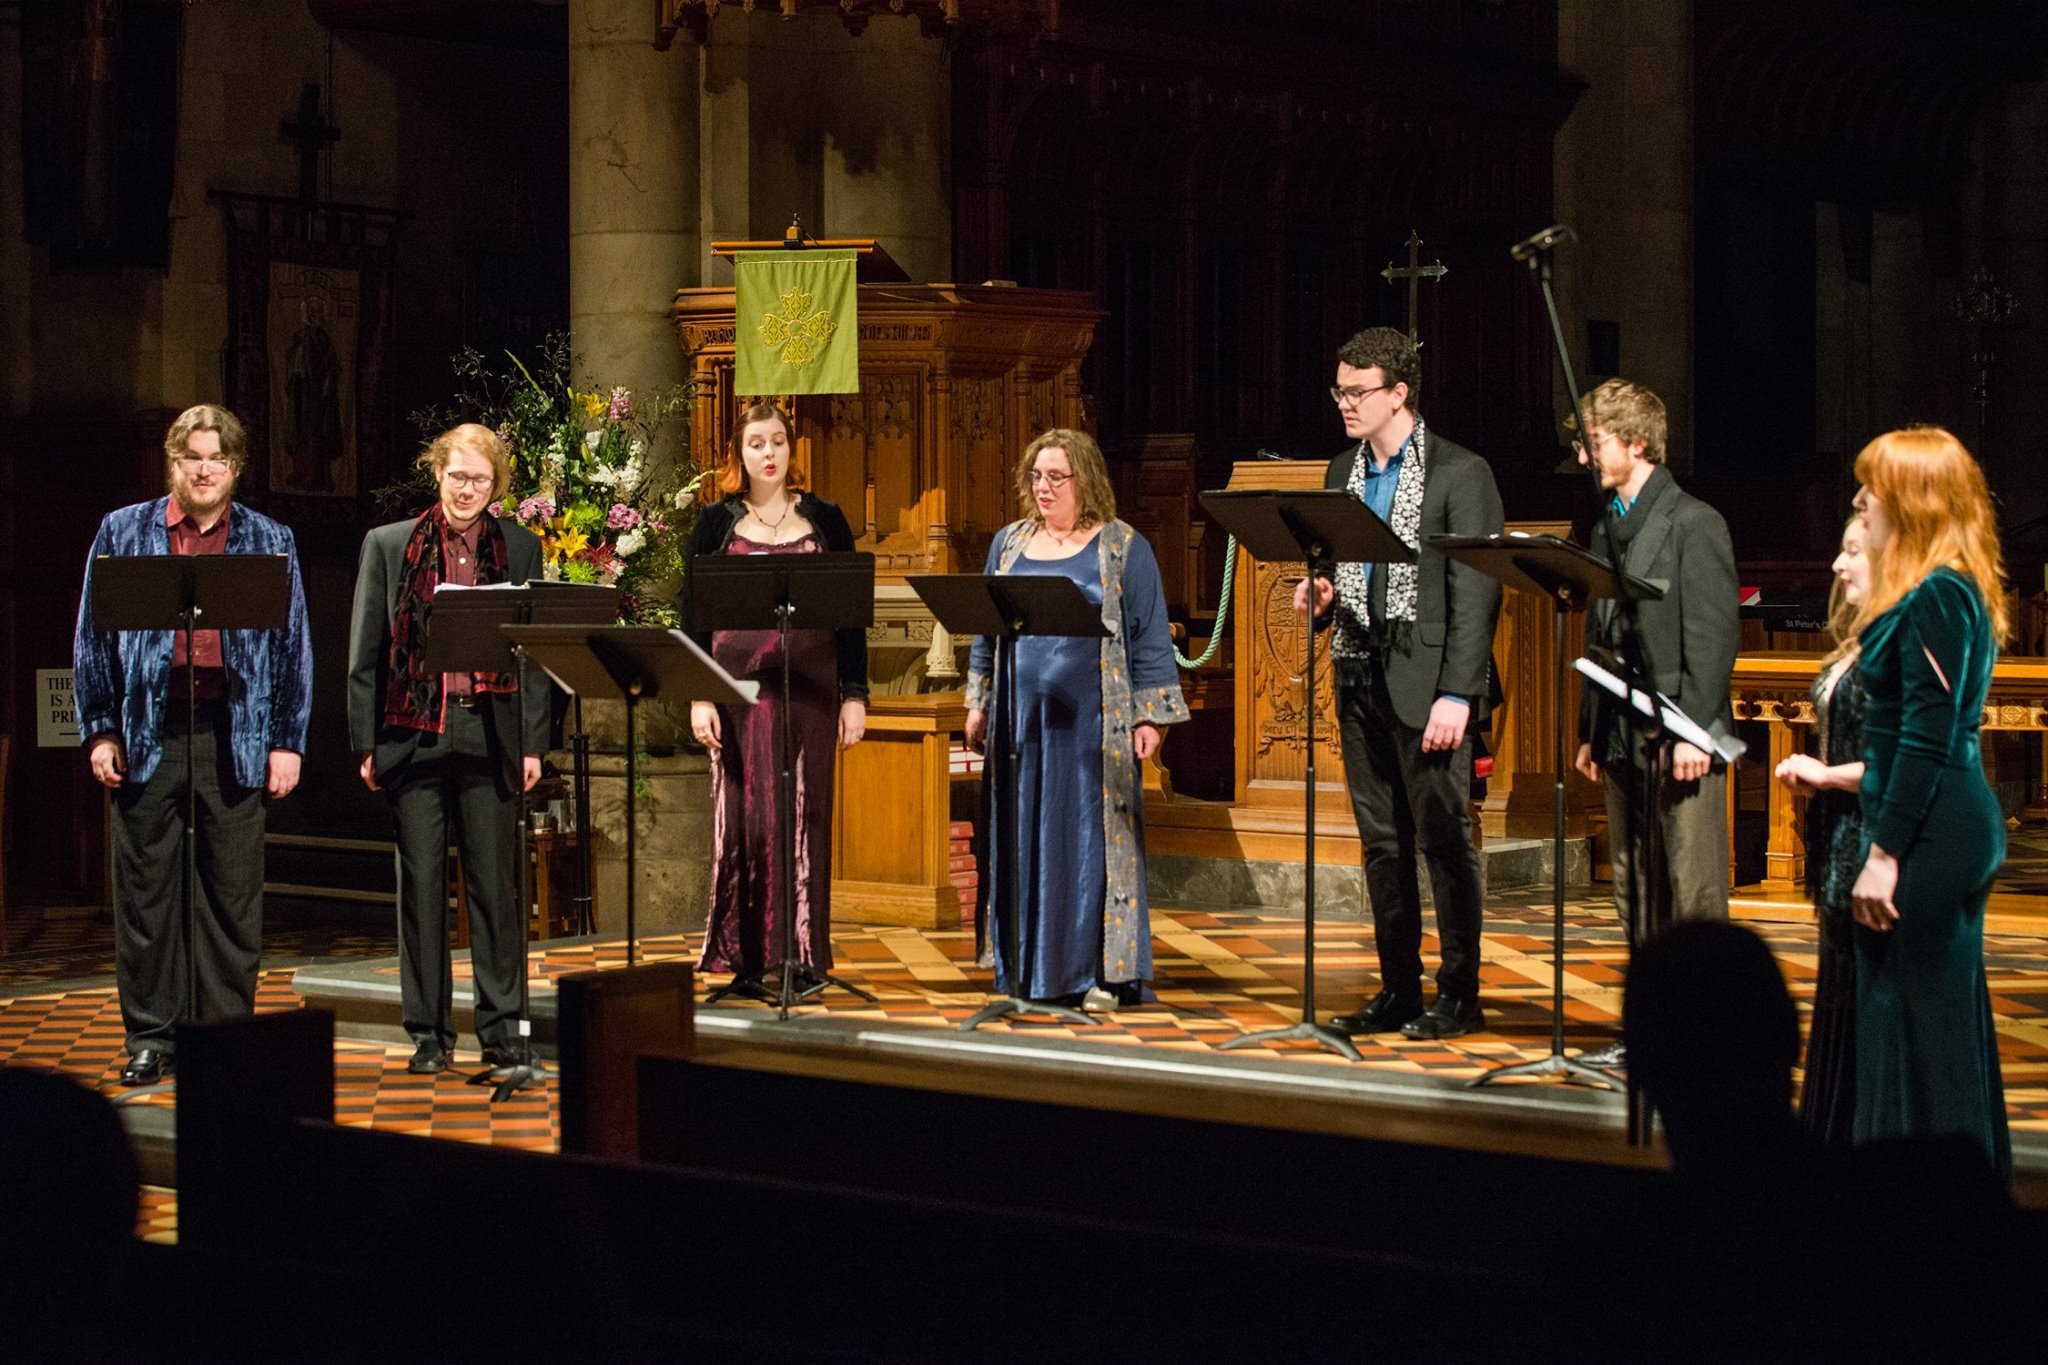 BWW Review: MIDNIGHT SUN at St Peter's Cathedral